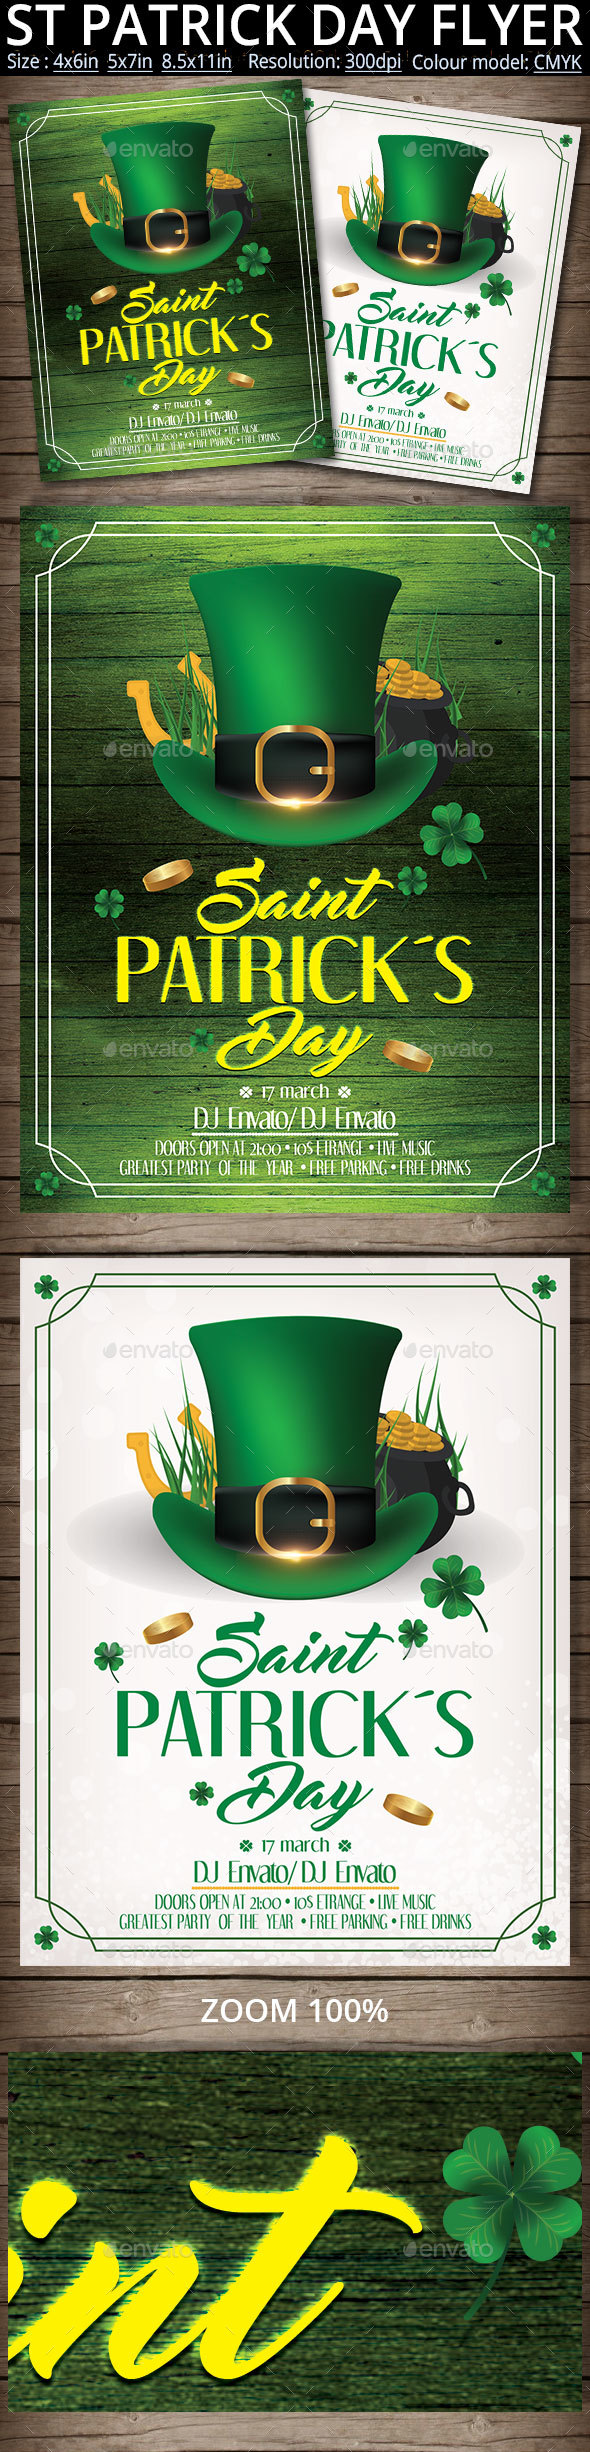 St Patrick Day Flyer And Poster Template - Events Flyers